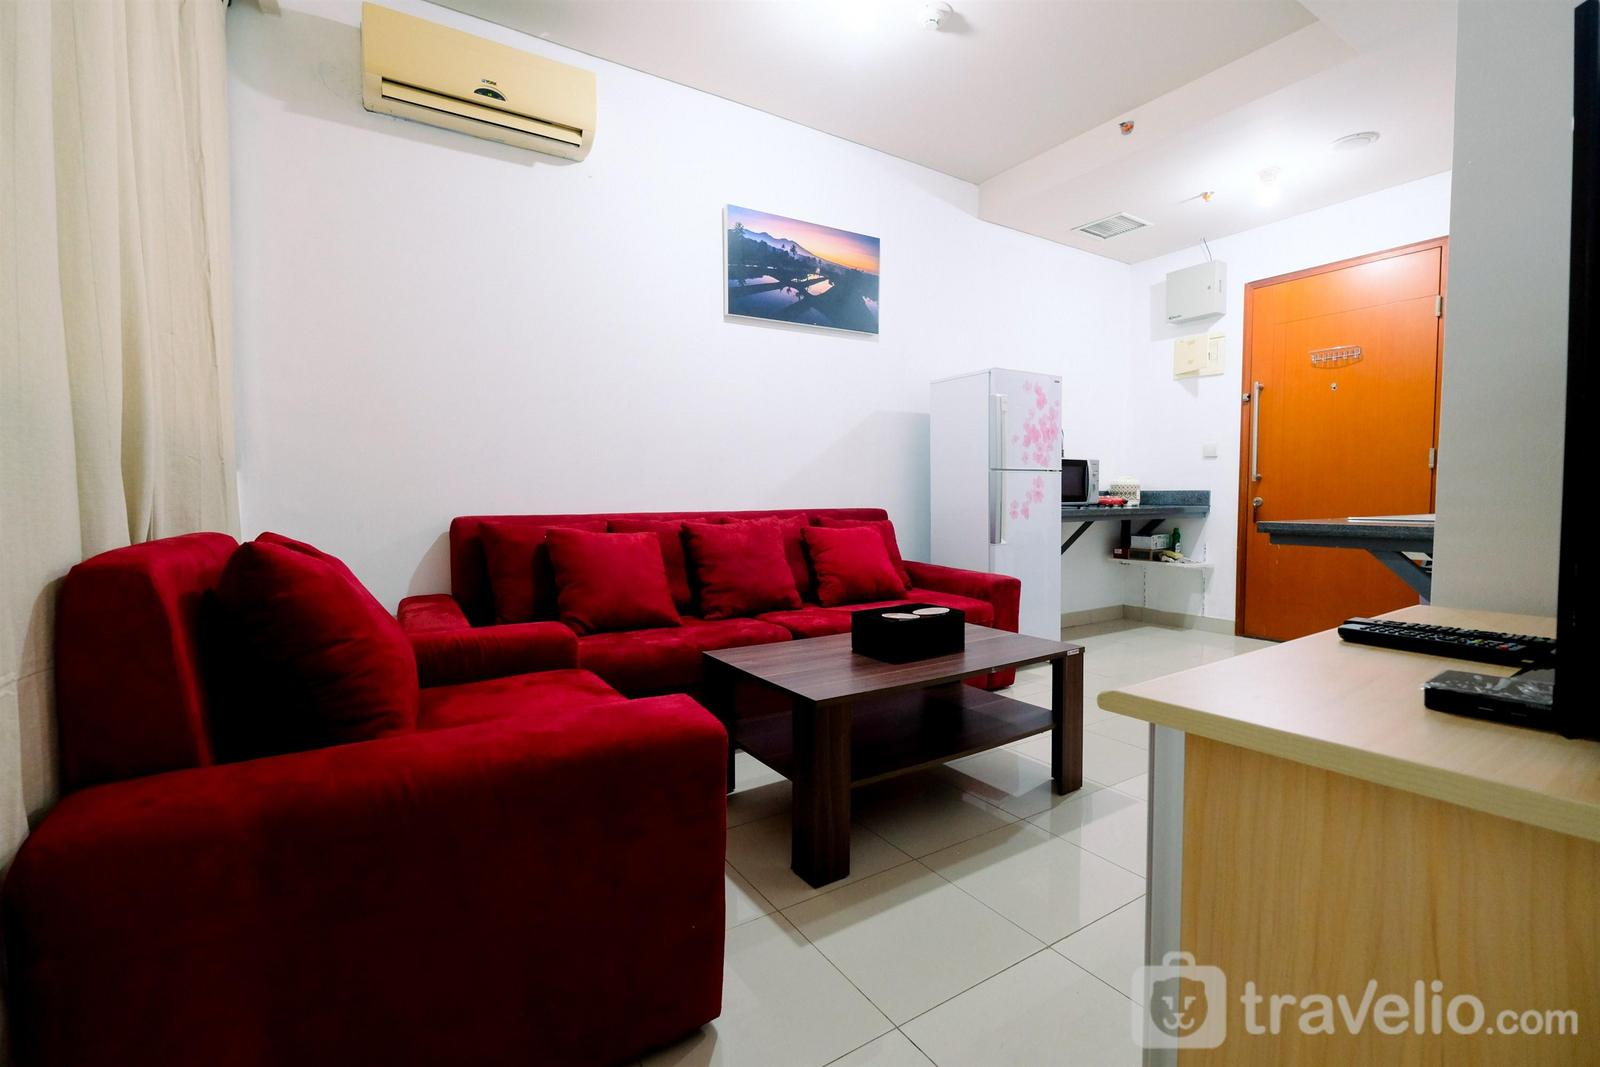 Kuningan Place Apartment - Modern 1BR at Kuningan Place Apartment near Shopping Mall By Travelio